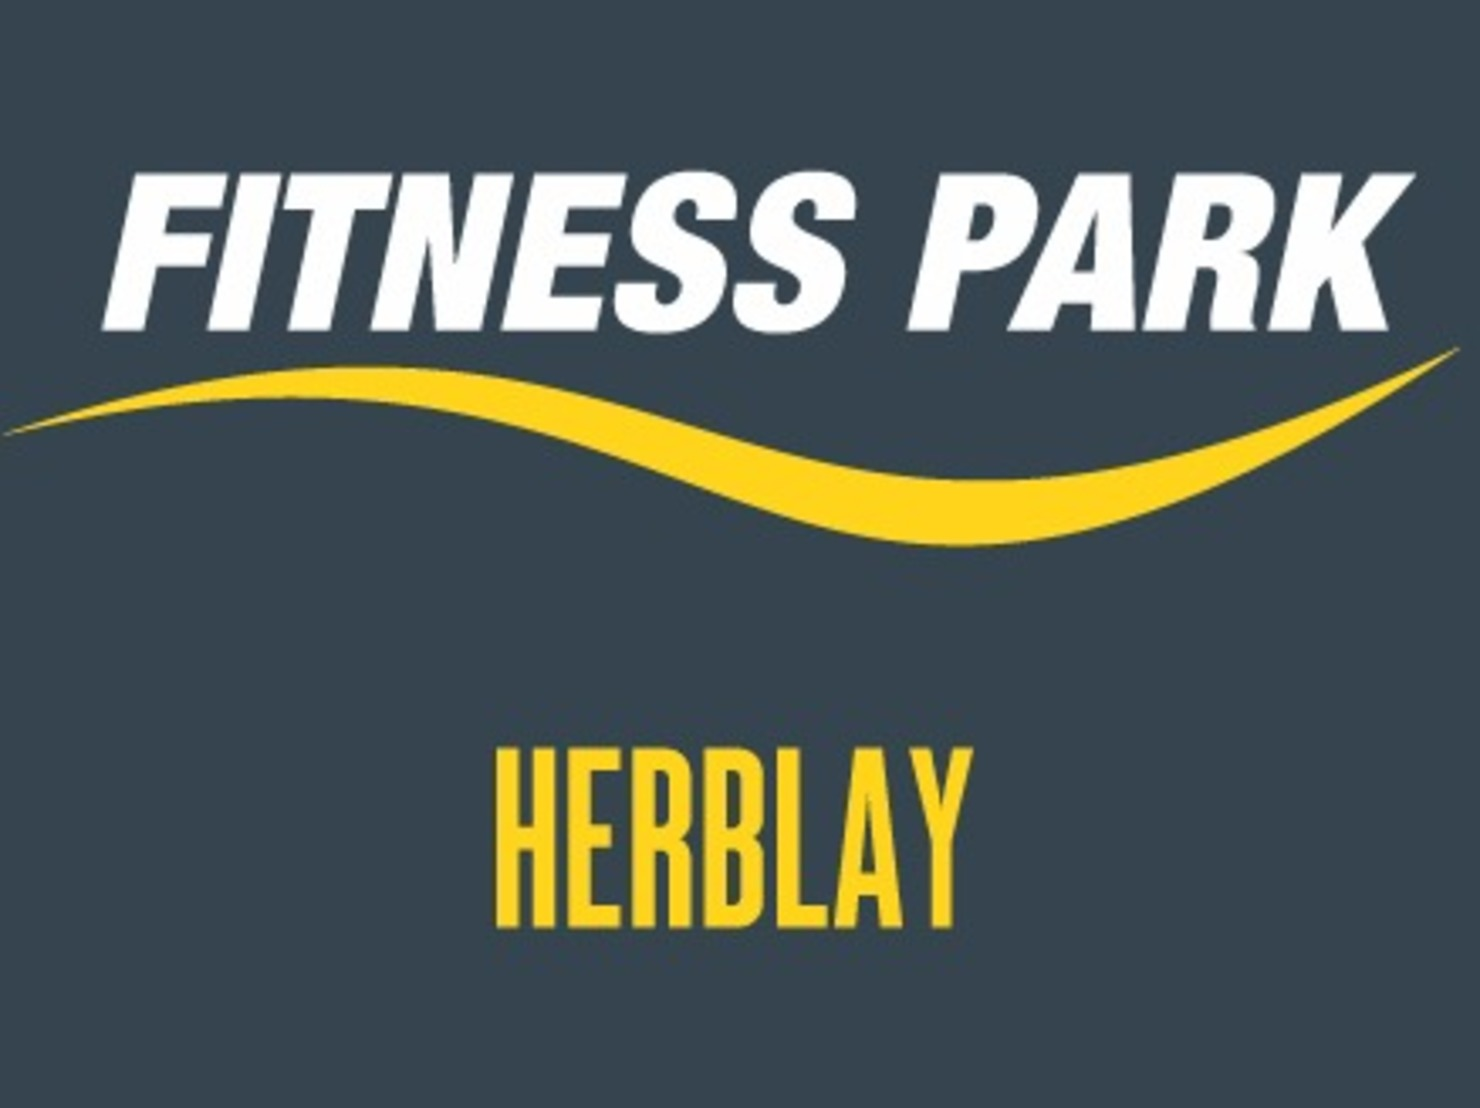 fitness park herblay tarifs avis horaires offre. Black Bedroom Furniture Sets. Home Design Ideas